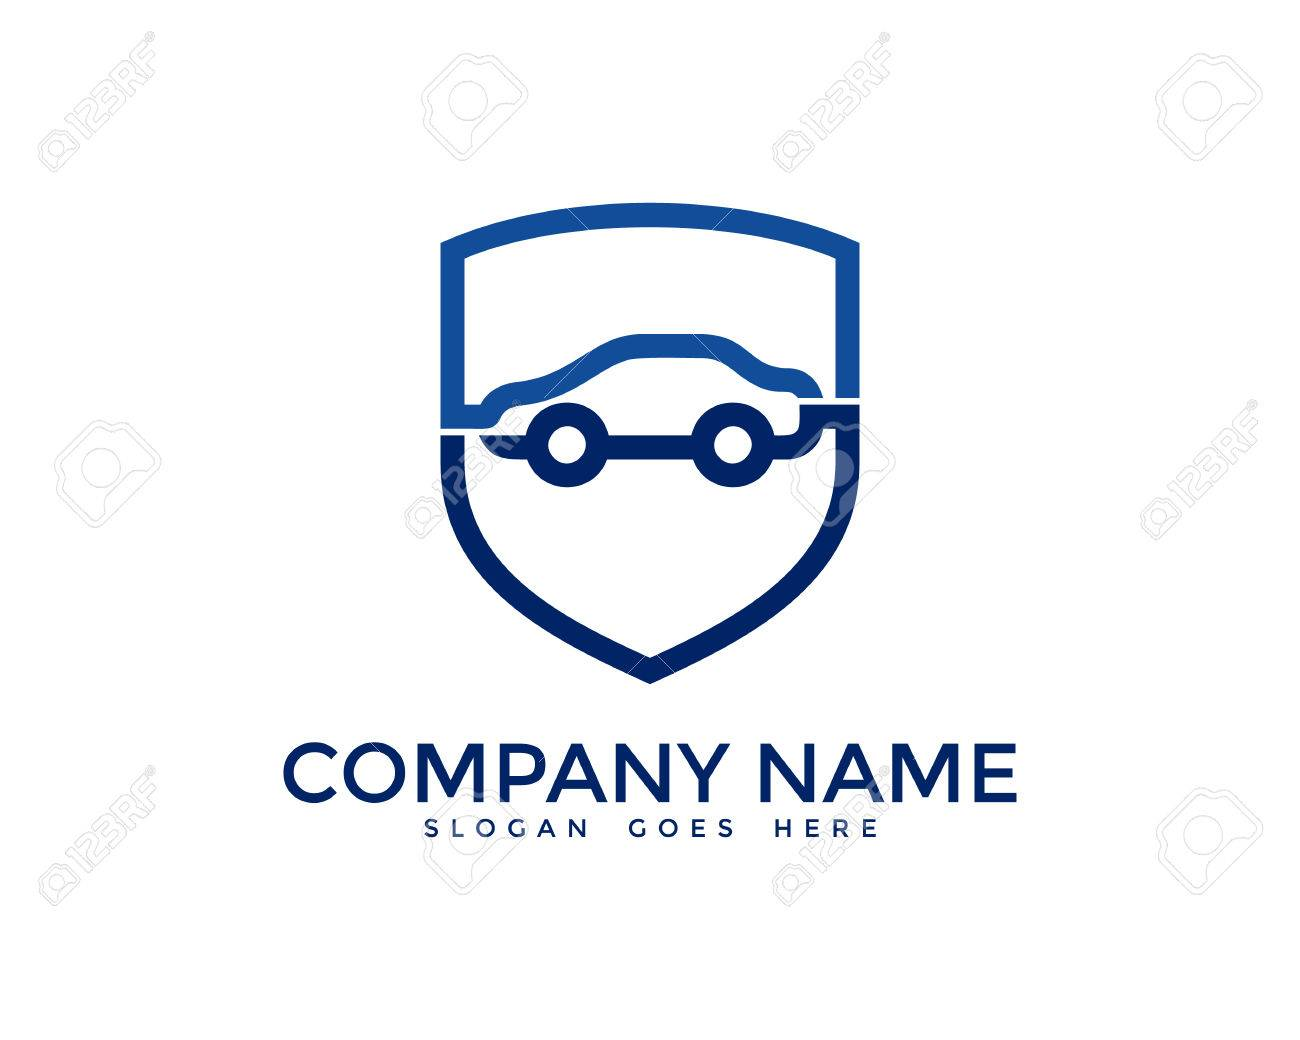 Automotive Car Insurance Logo Design Template Royalty Free Cliparts